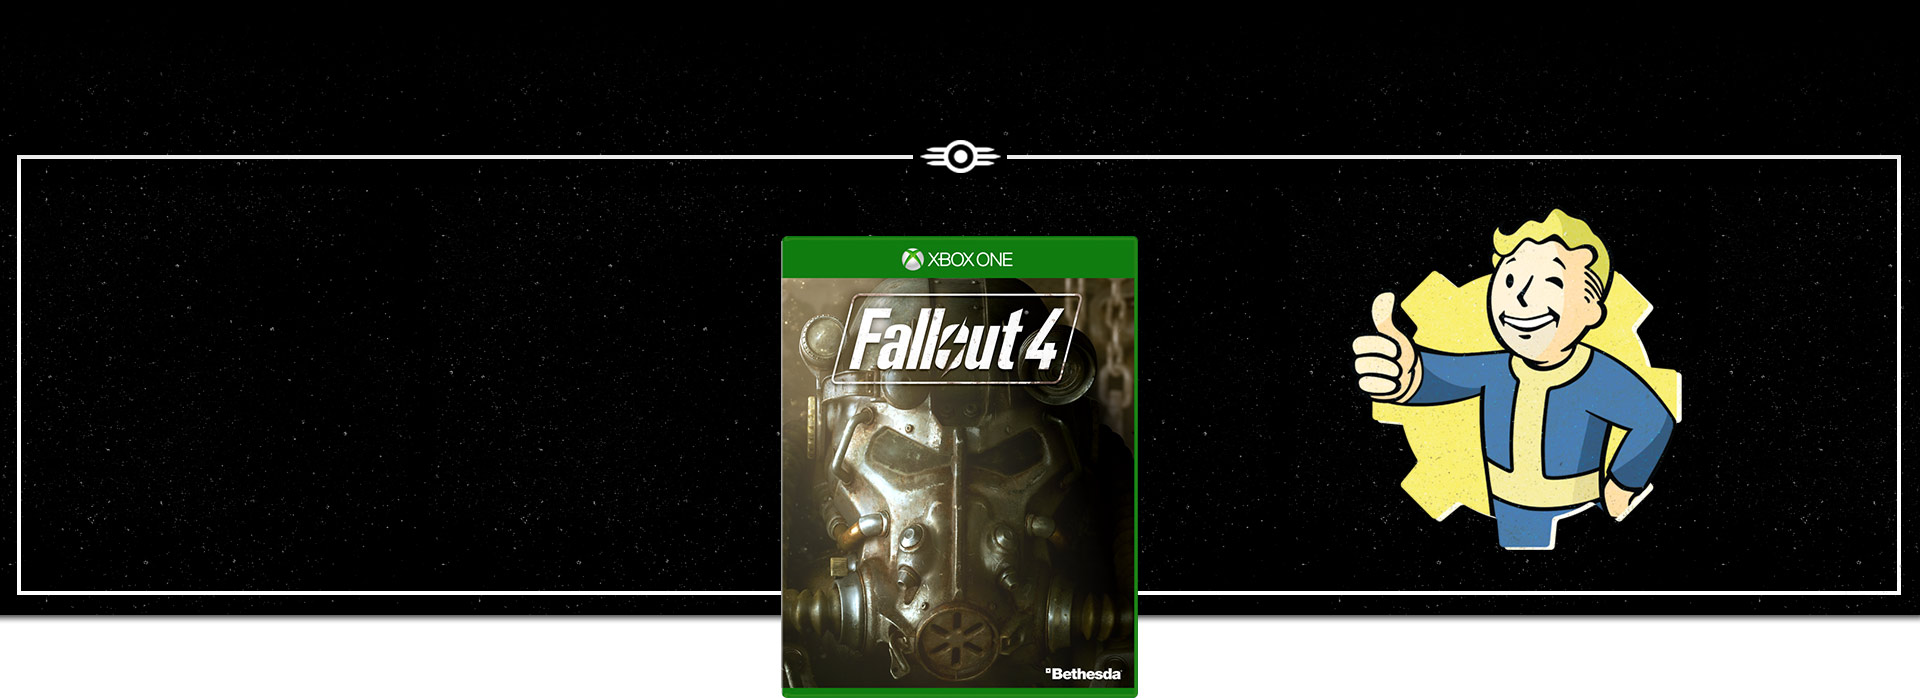 Fallout 4 Boxshot with Pip boy logo